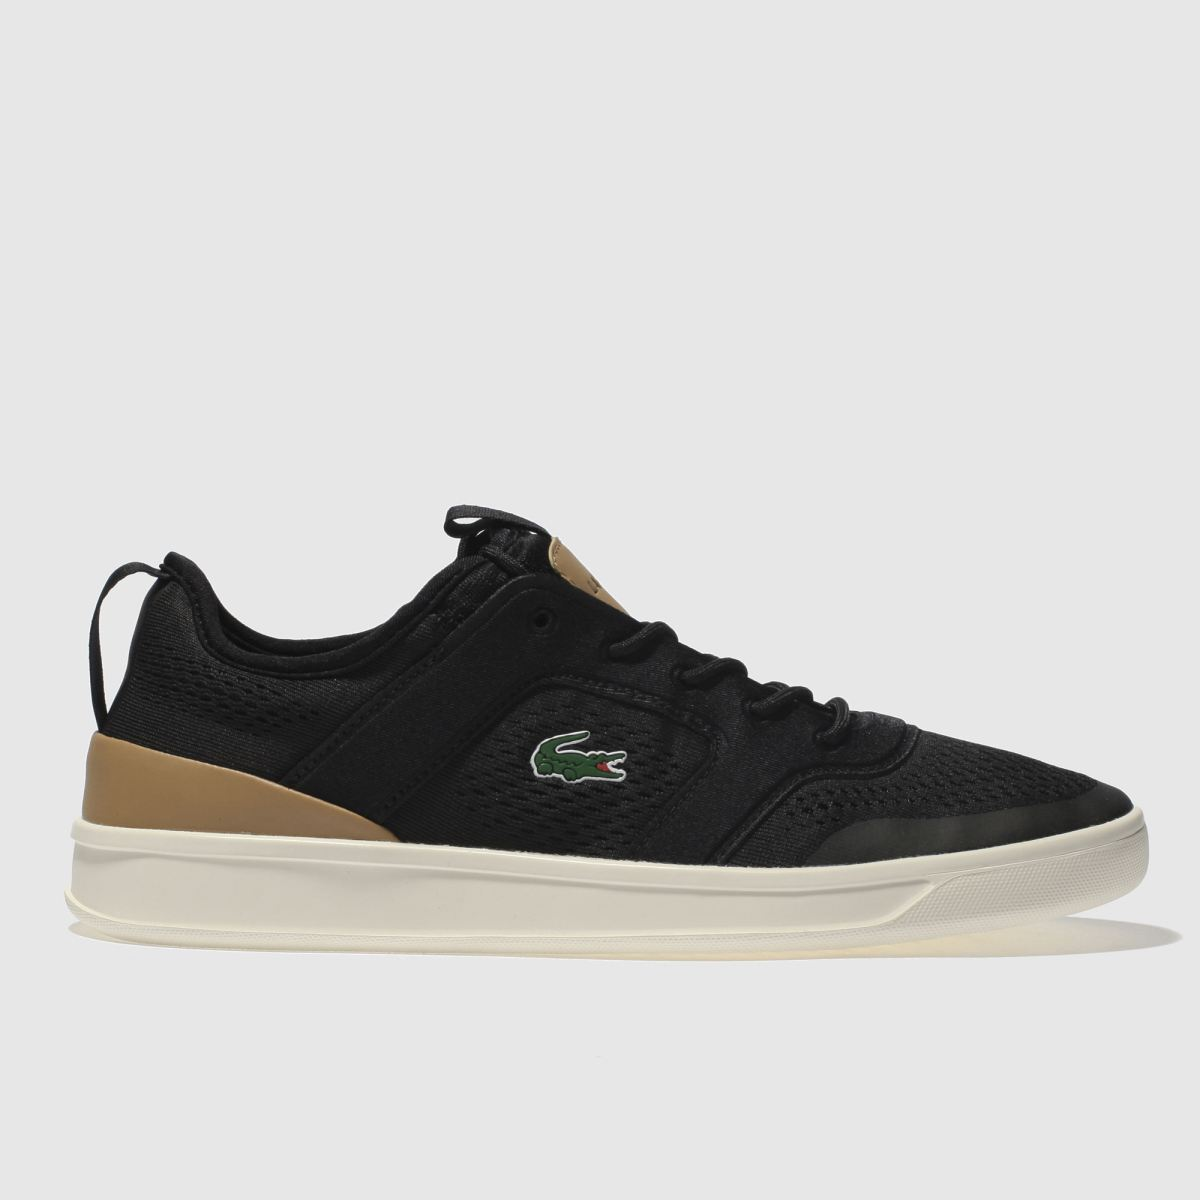 Lacoste Black & Brown Explorateur Light Trainers